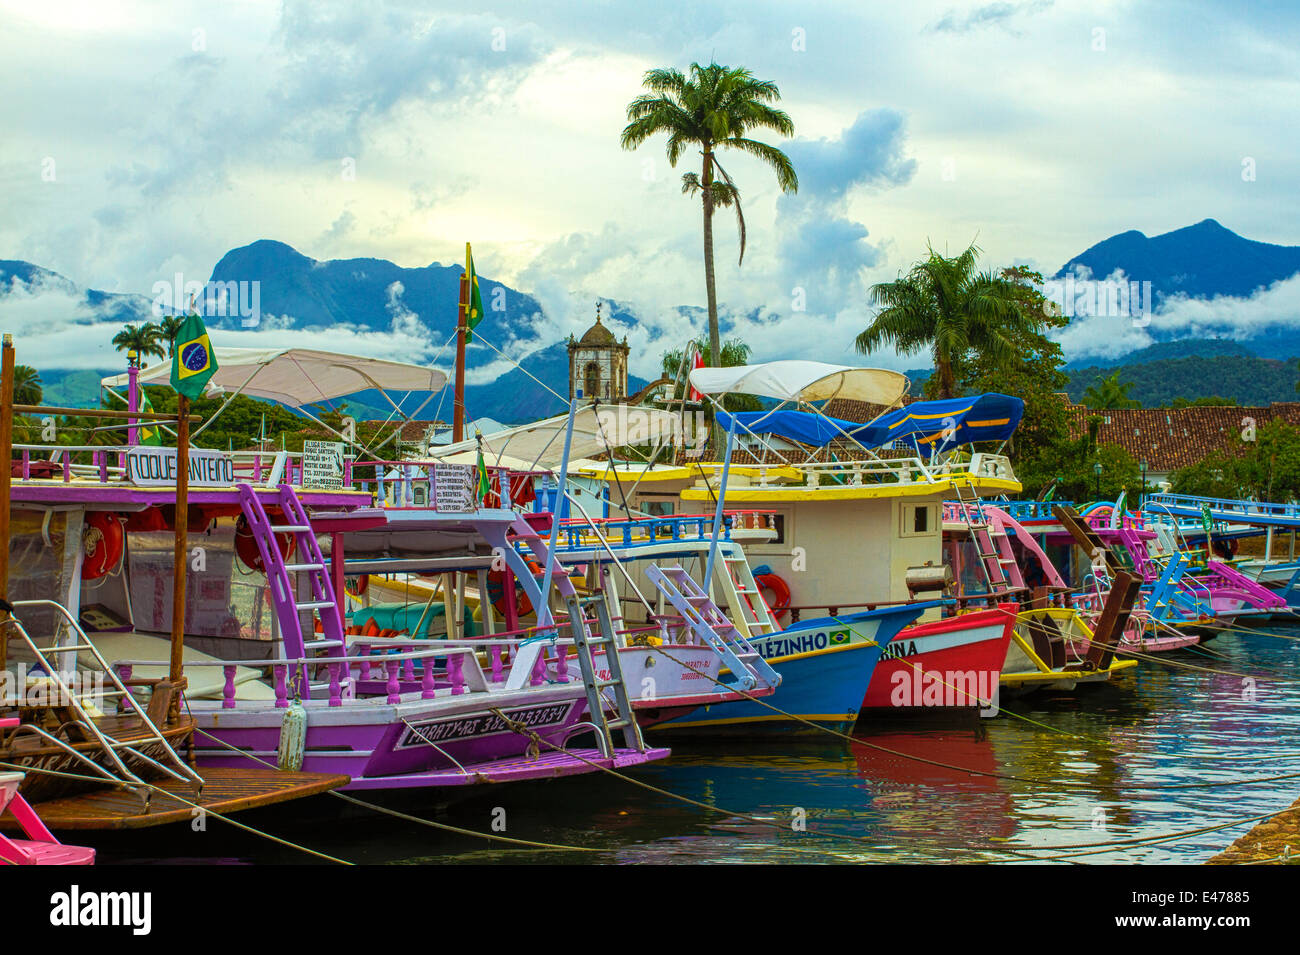 Parati, Rio de Janeiro, Brazil. Colorful ships at the Parati´s port. More commonly use for seightseeing tours - Stock Image